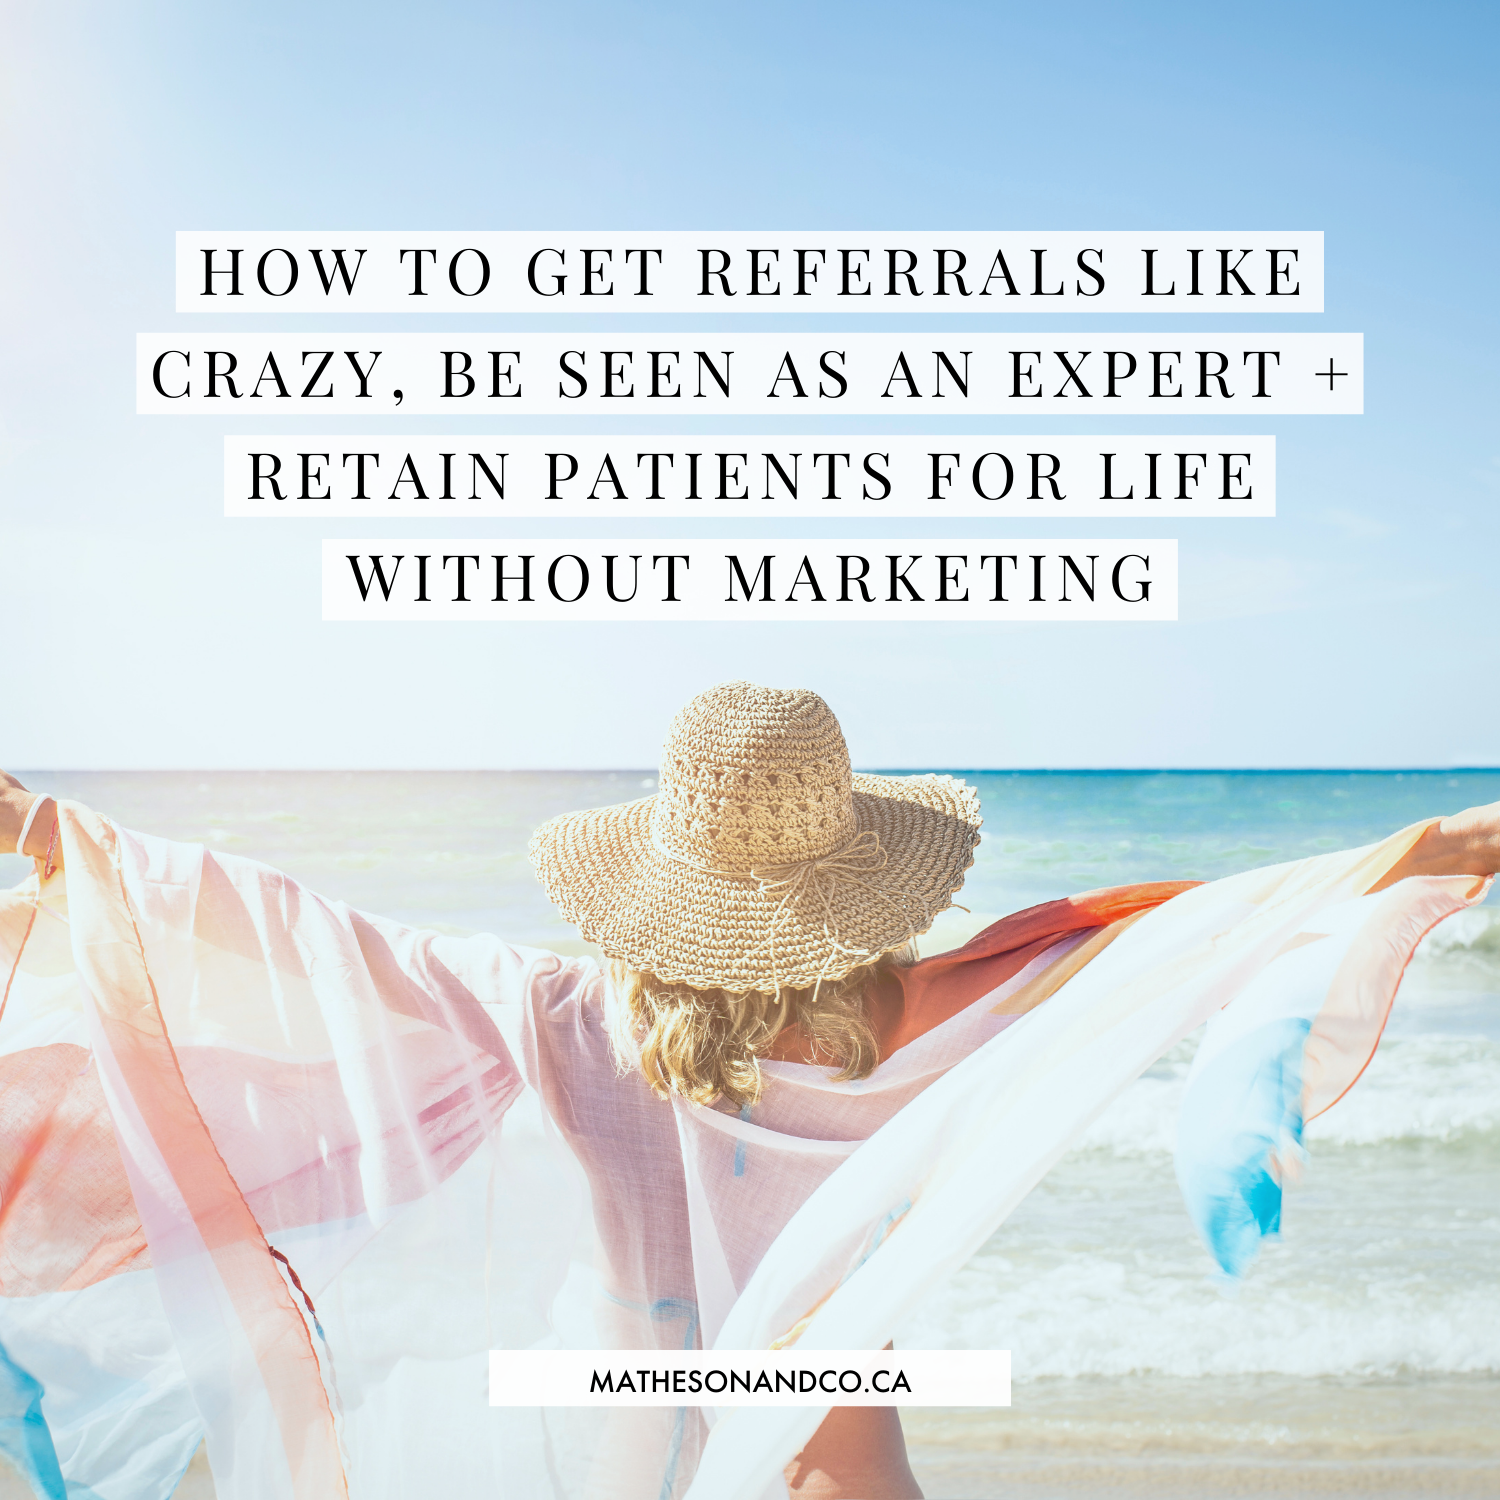 How to Get Referrals Like Crazy, Be Seen as an Expert + Retain Patients for Life Without Marketing